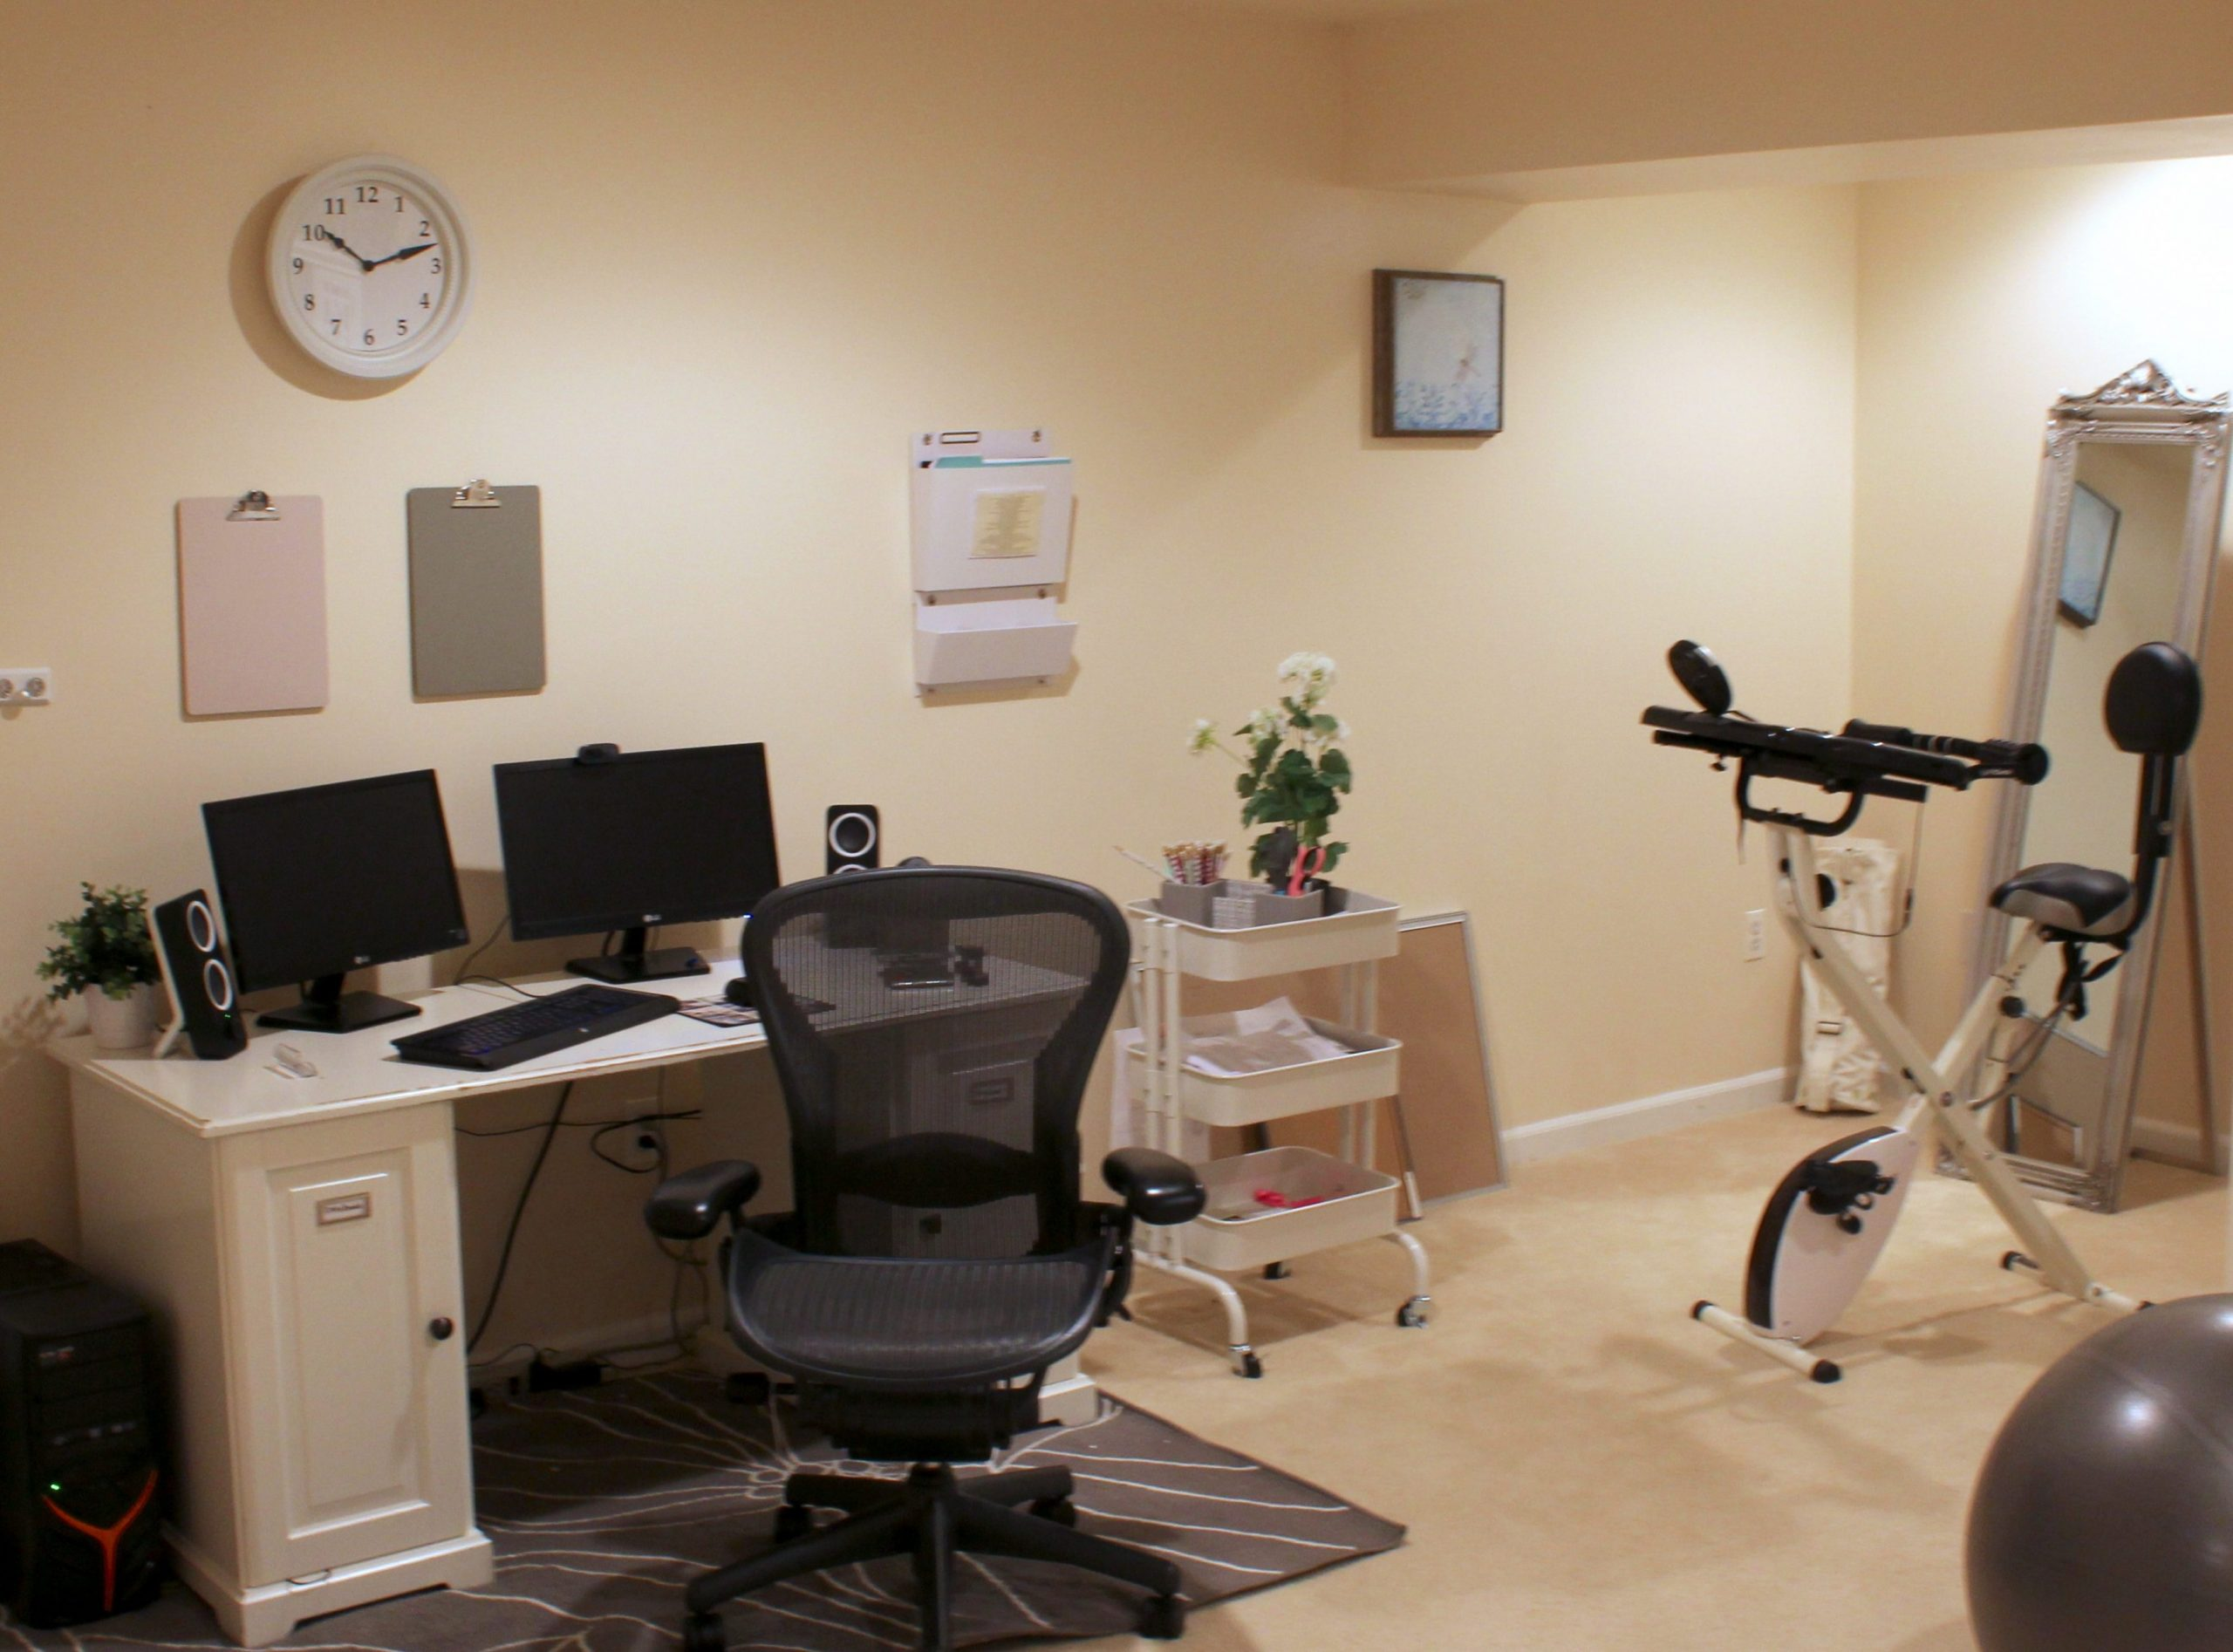 Home Office Ideas on a Budget: 8 Easy Office Upgrades  Busy Budgeter - Home Office Ideas Budget